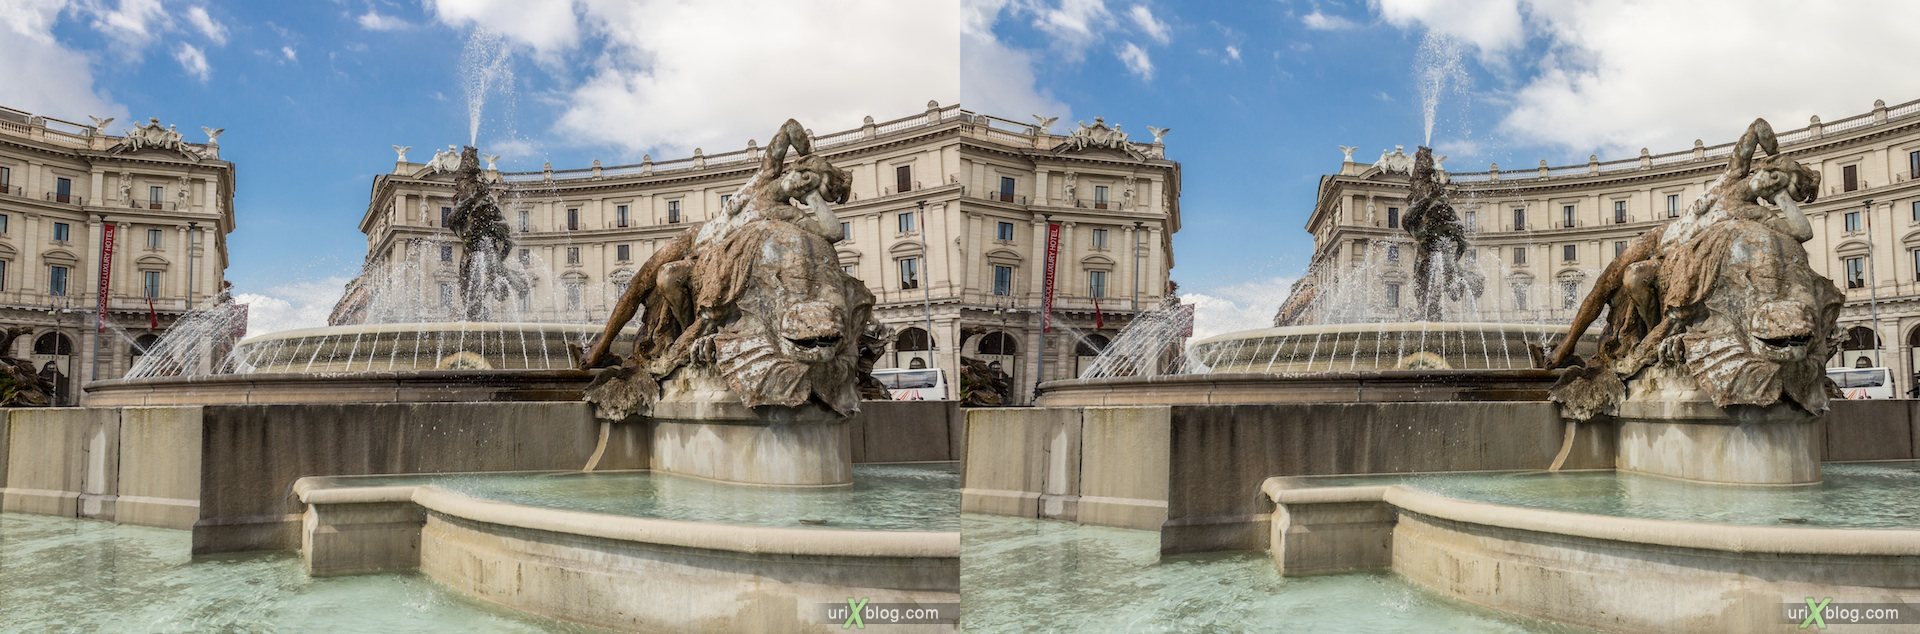 2012, fountain of the Naiads, Piazza della Repubblica, Rome, Italy, 3D, stereo pair, cross-eyed, crossview, cross view stereo pair